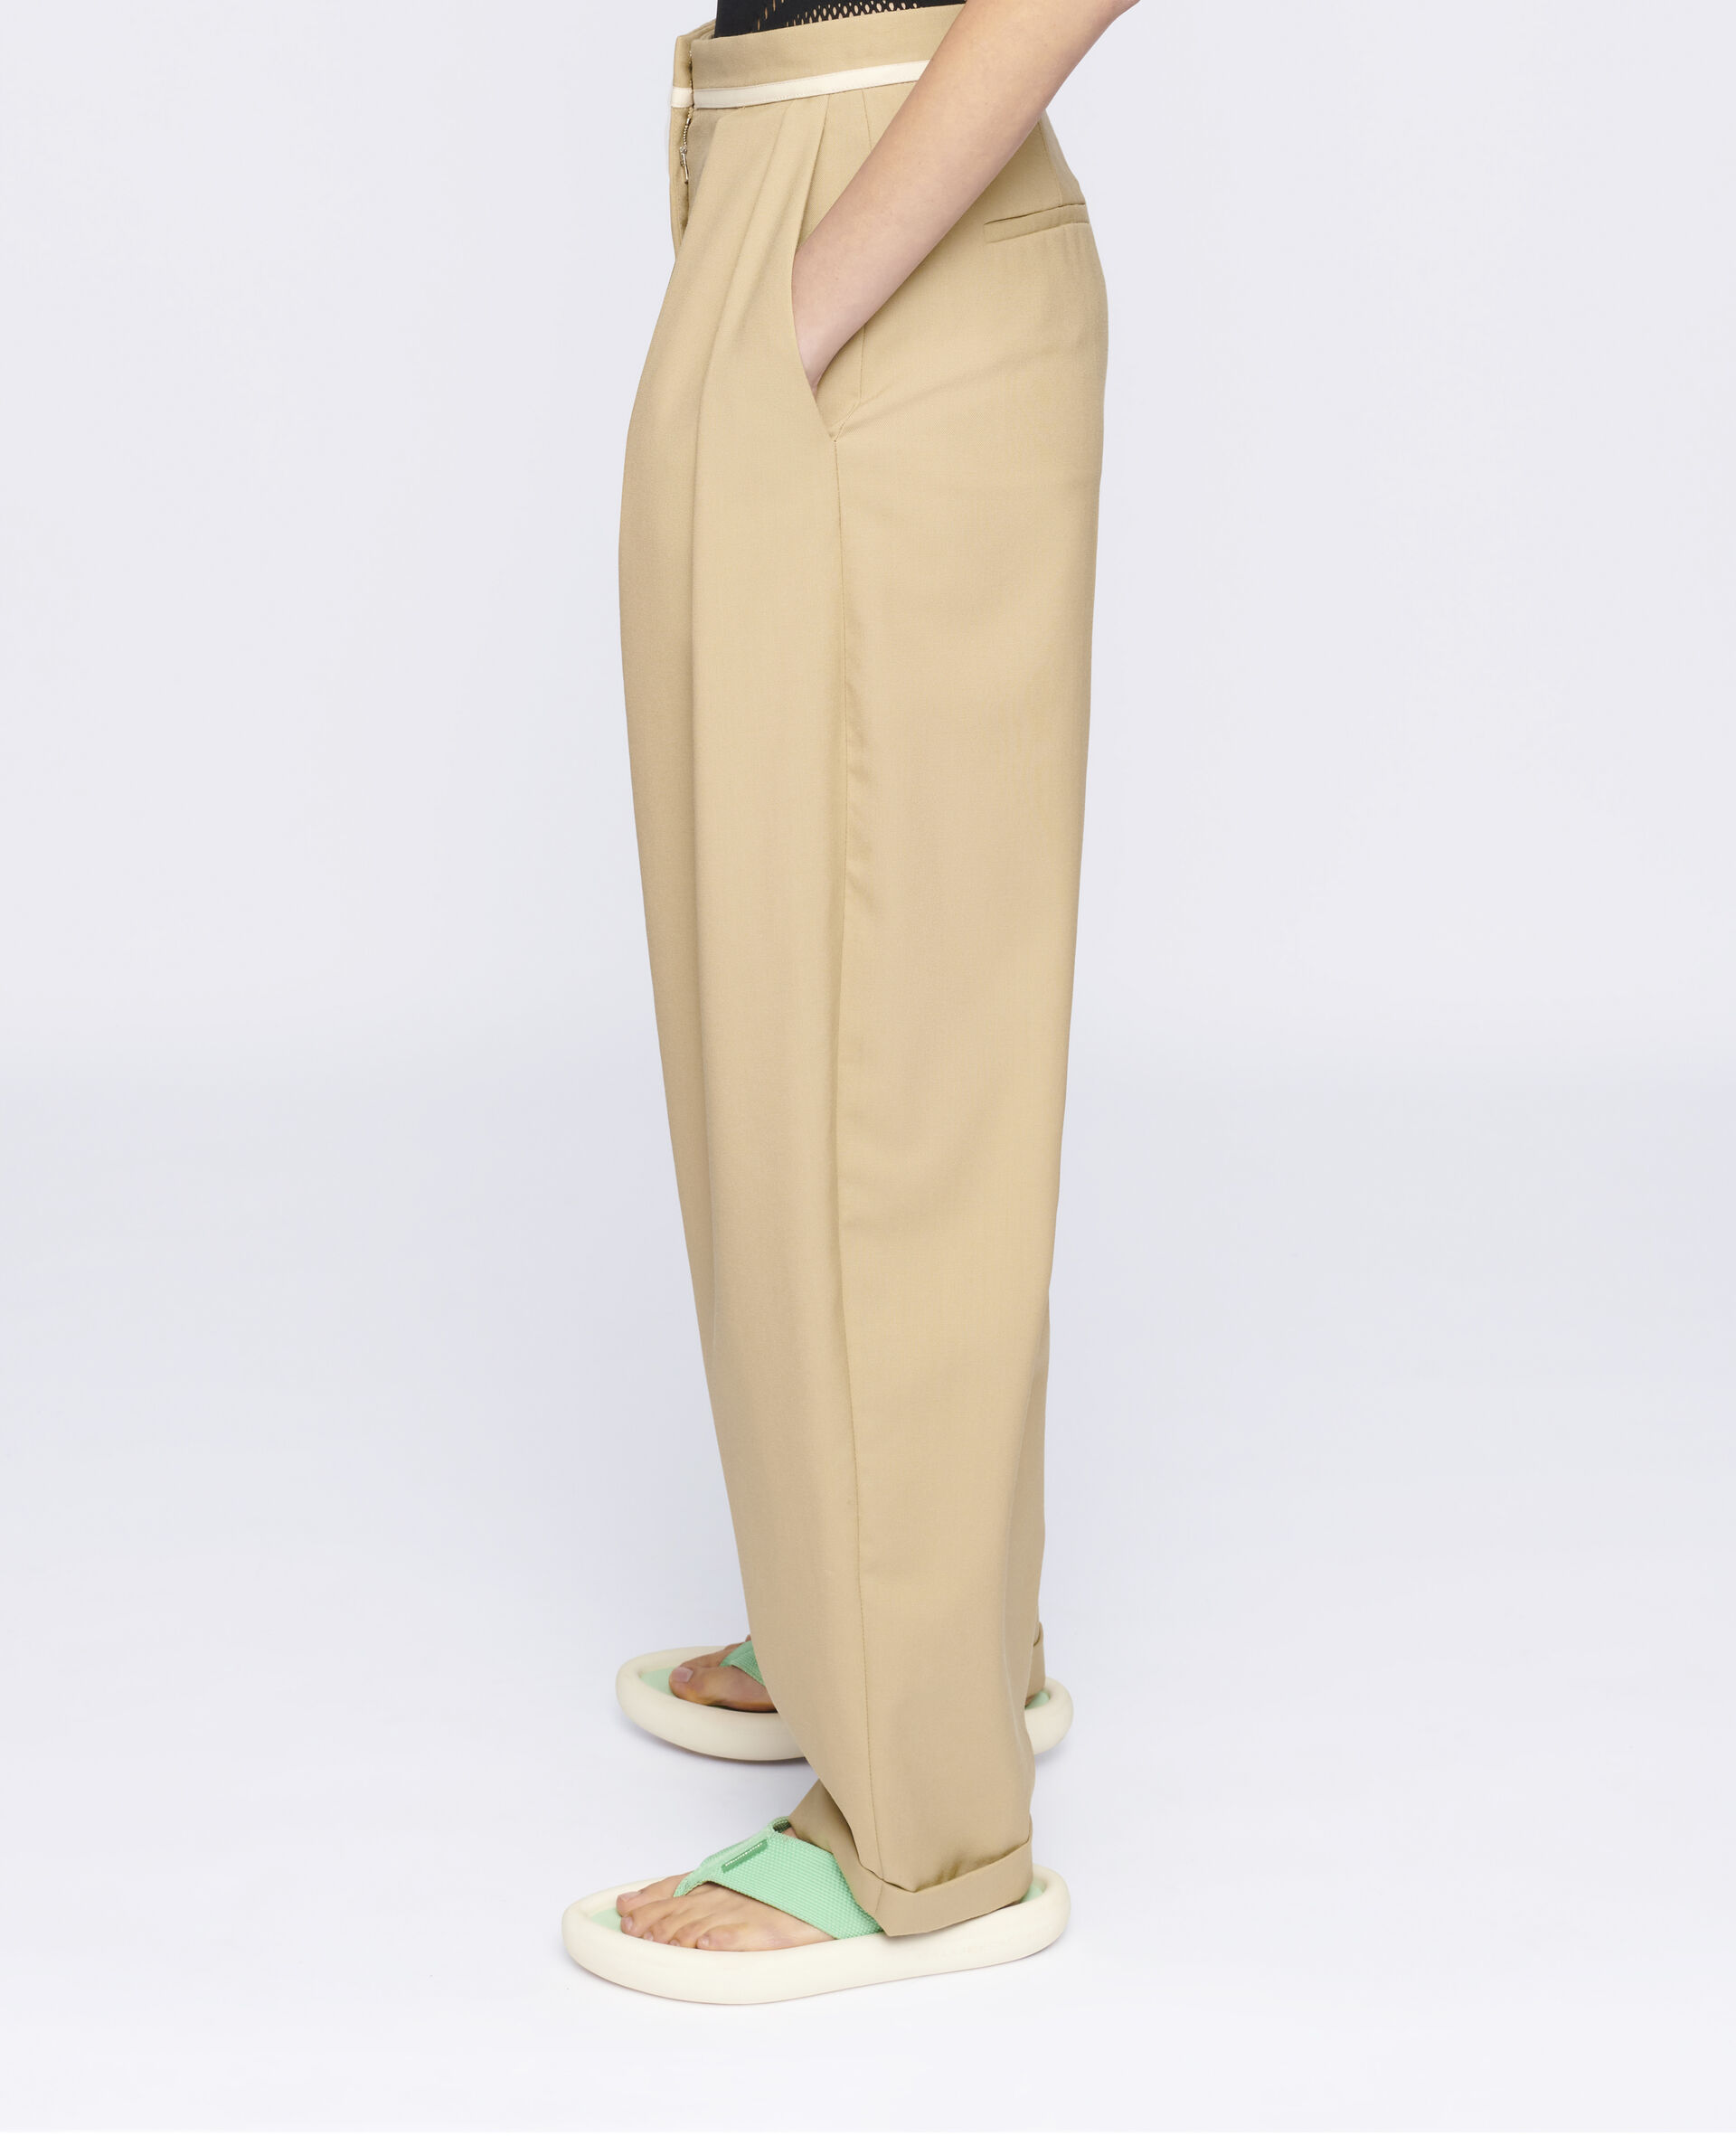 Ariana Wool Trousers-Beige-large image number 3